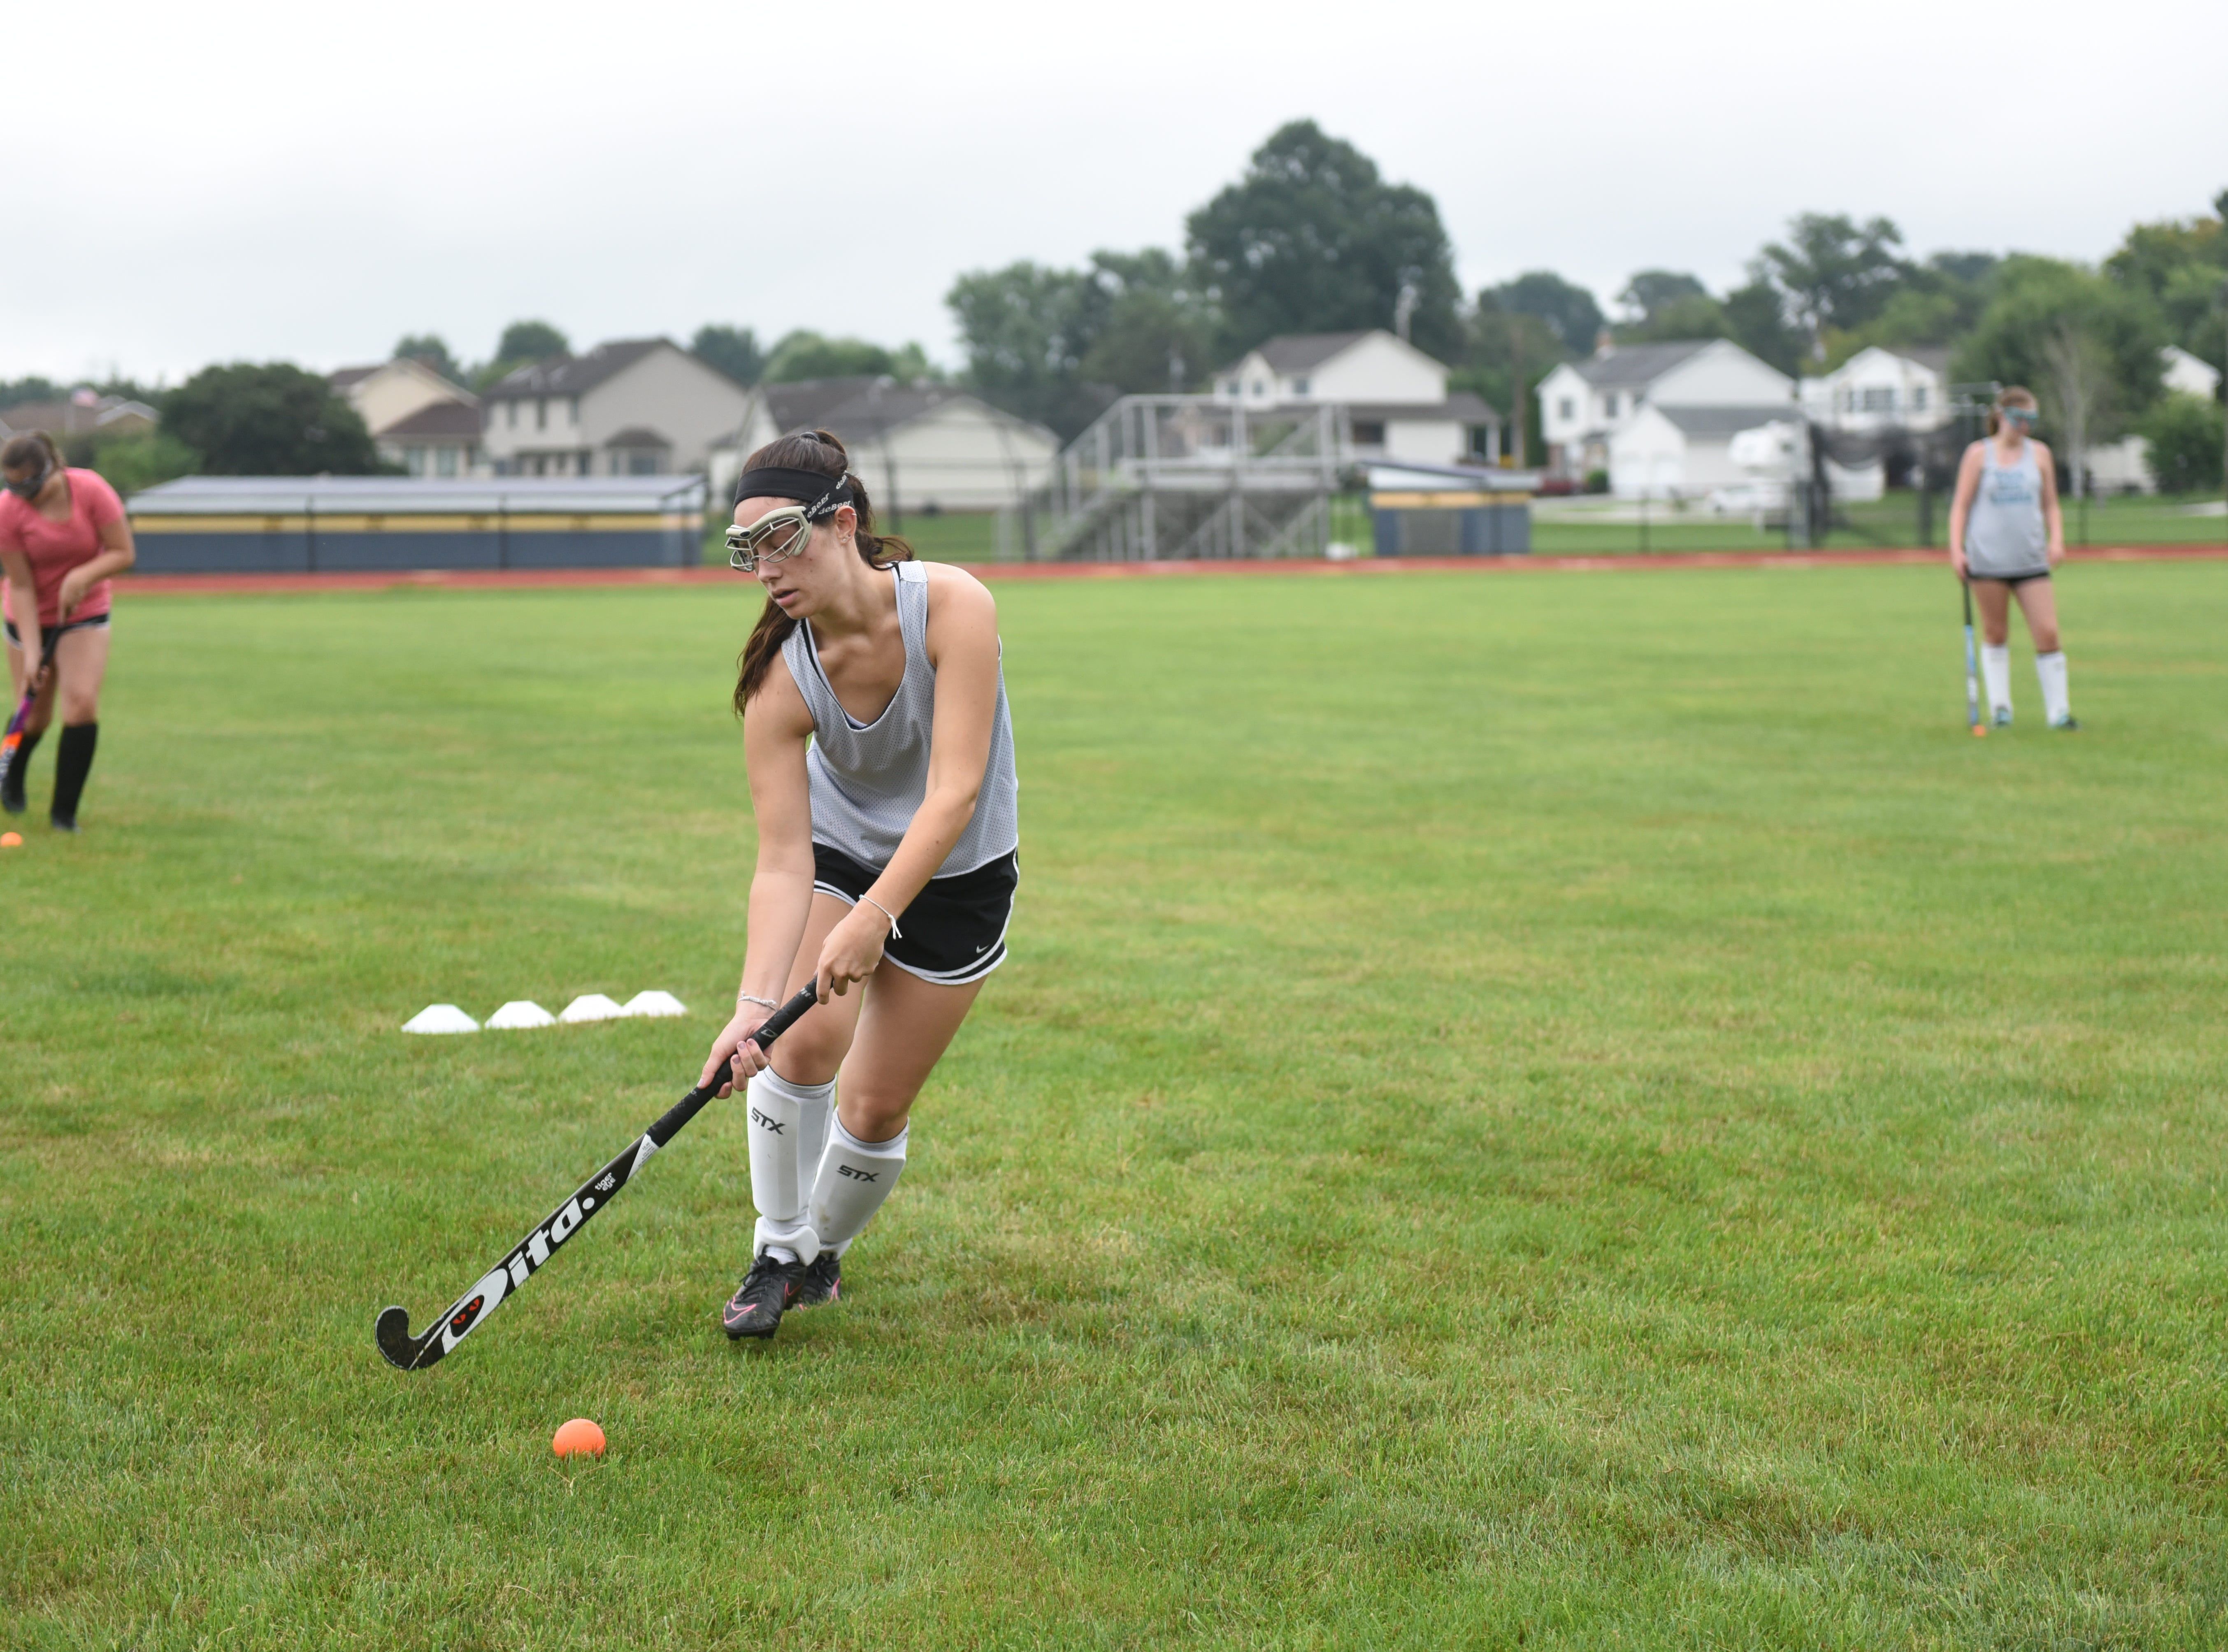 Kelsey Abrams, a senior defense player for Littlestown field hockey, runs through a drill on the first day of fall sports on Monday, Aug. 13, 2018.